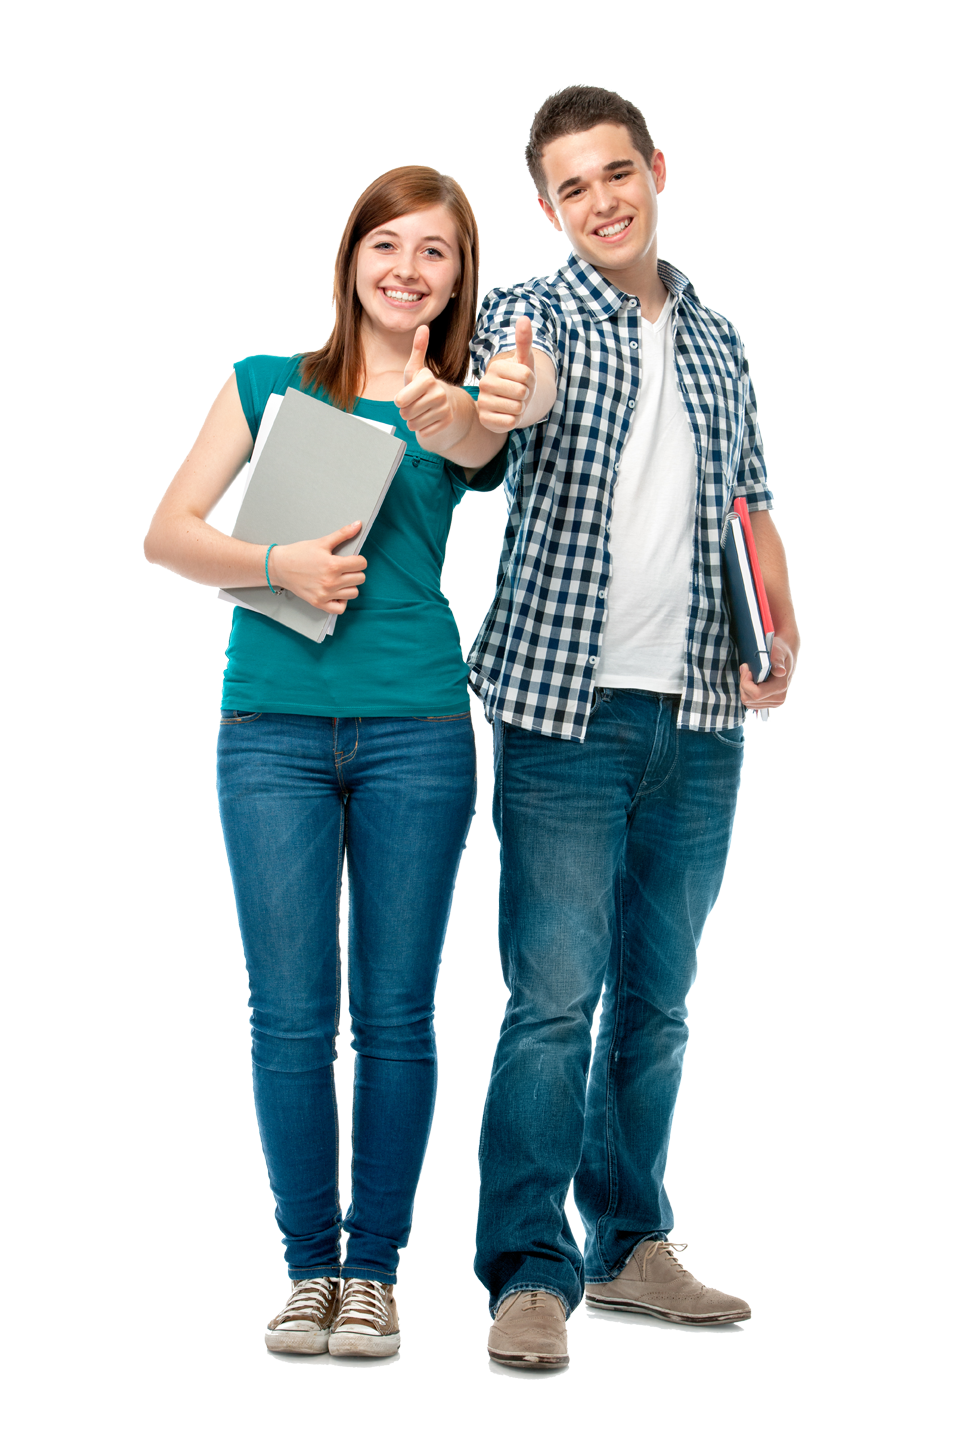 Student image png. Images free download